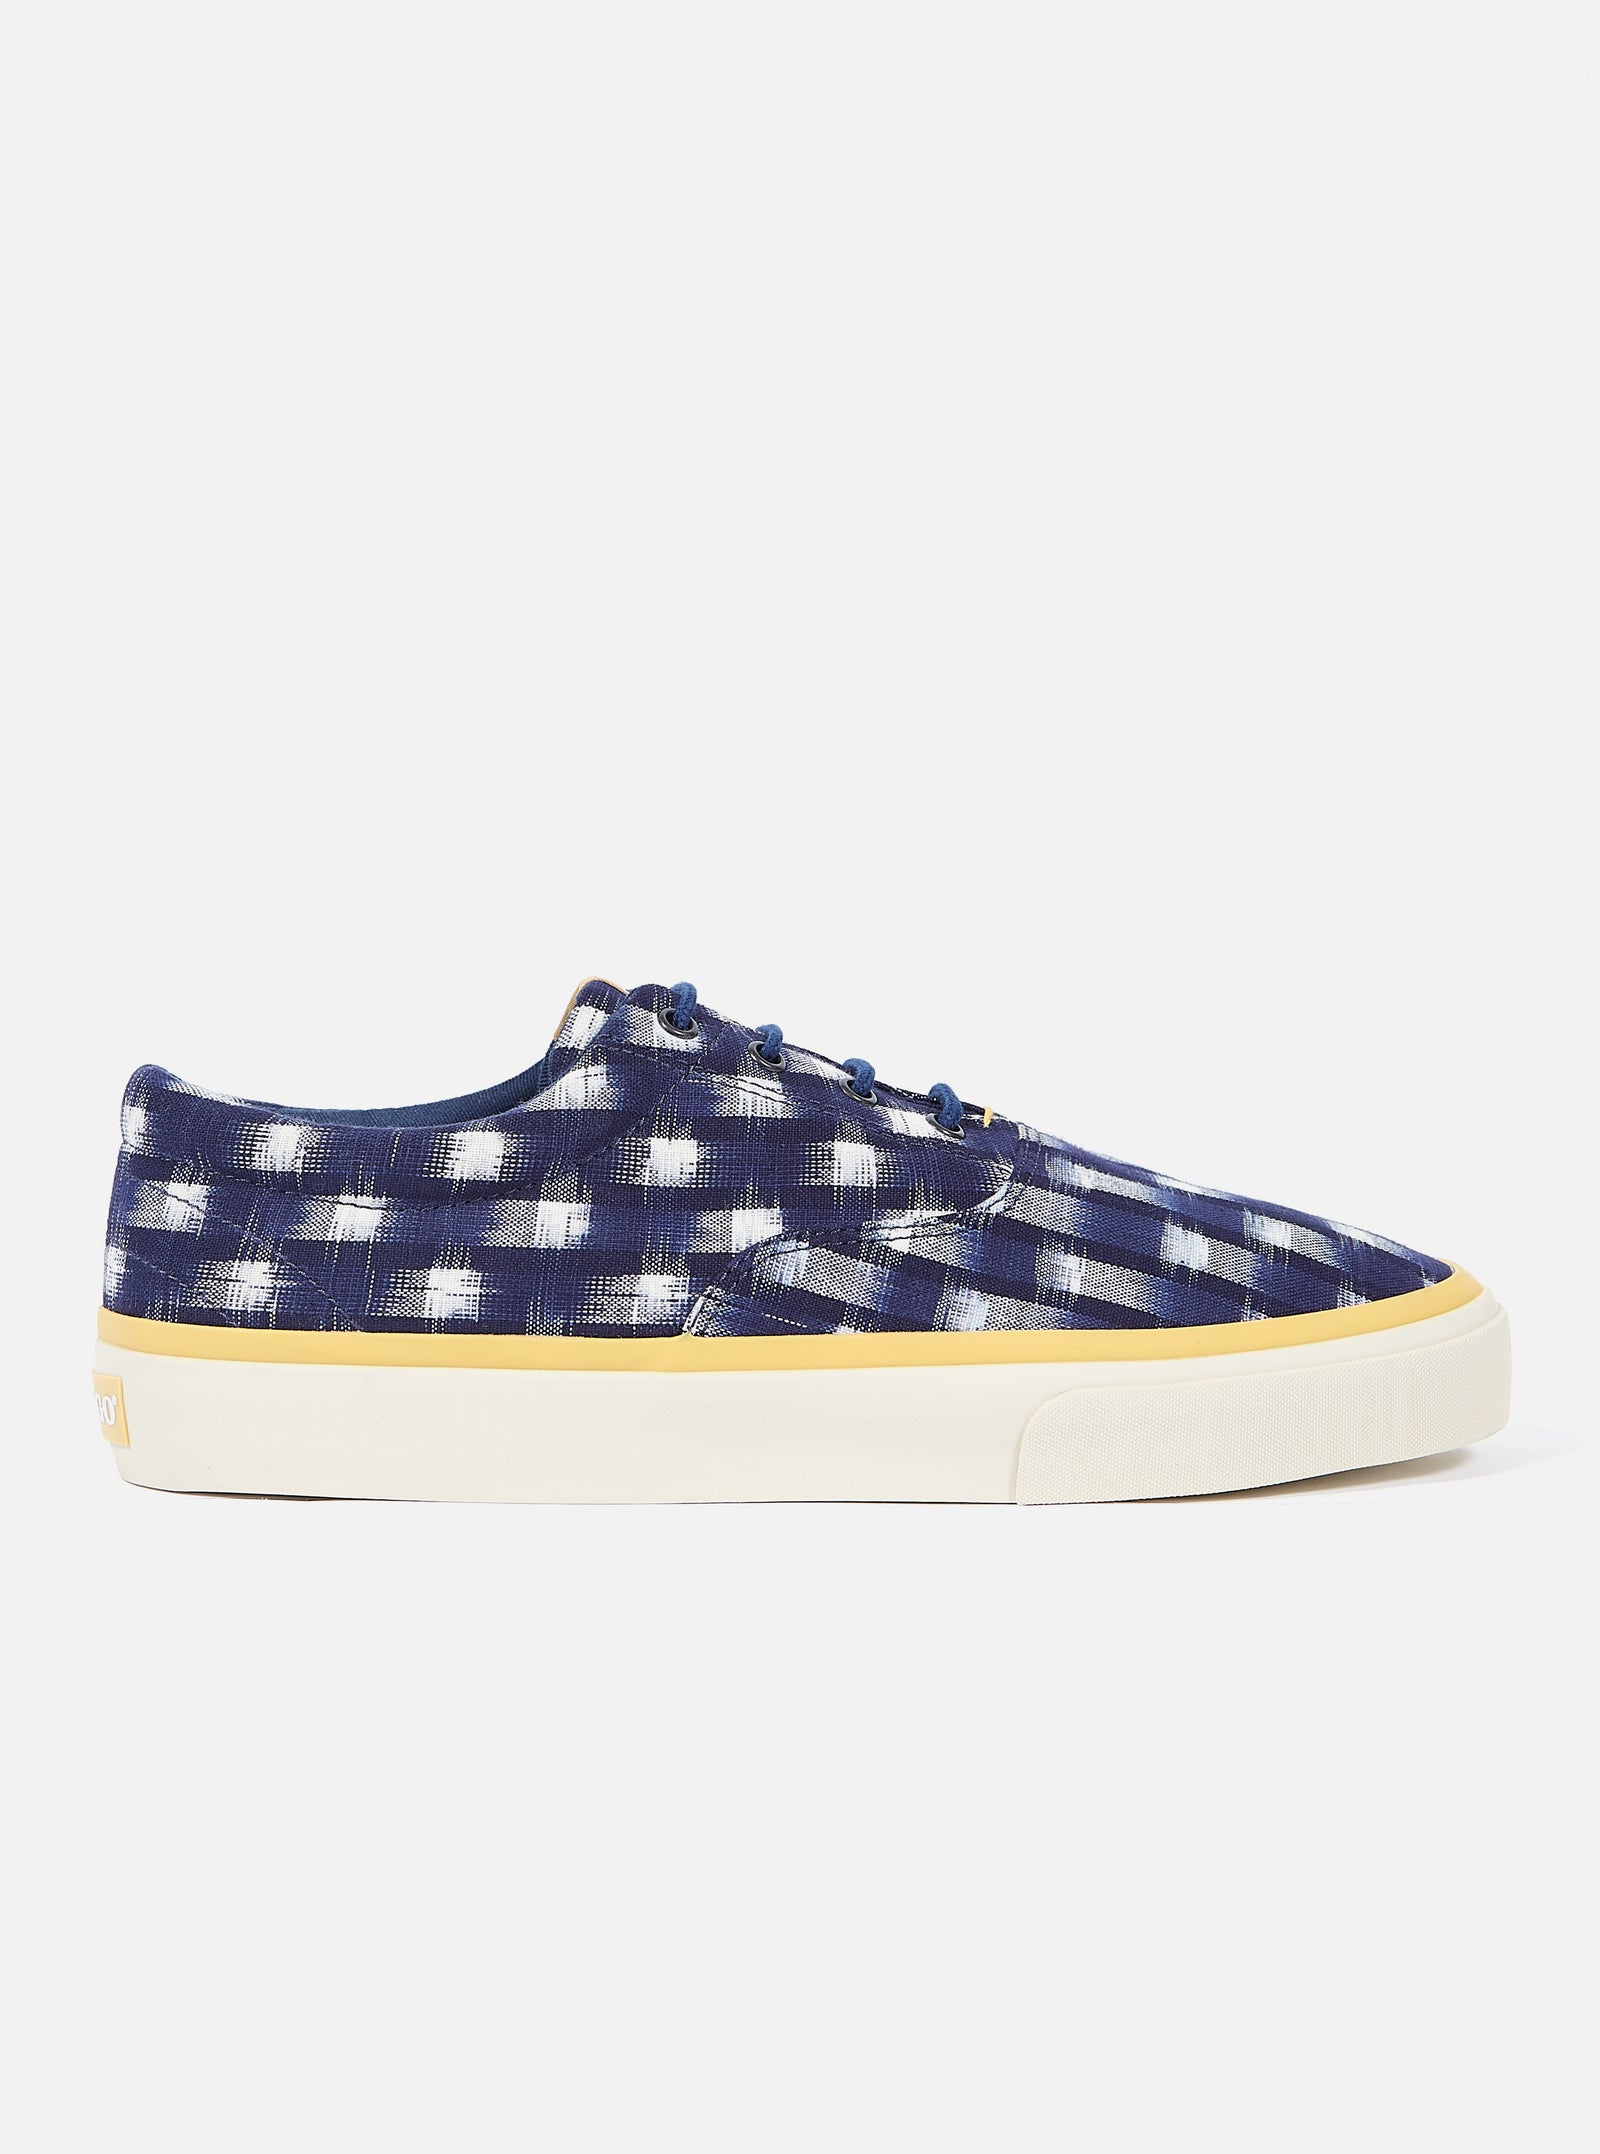 Universal Works x Sebago John in Indigo Double Ikat Square